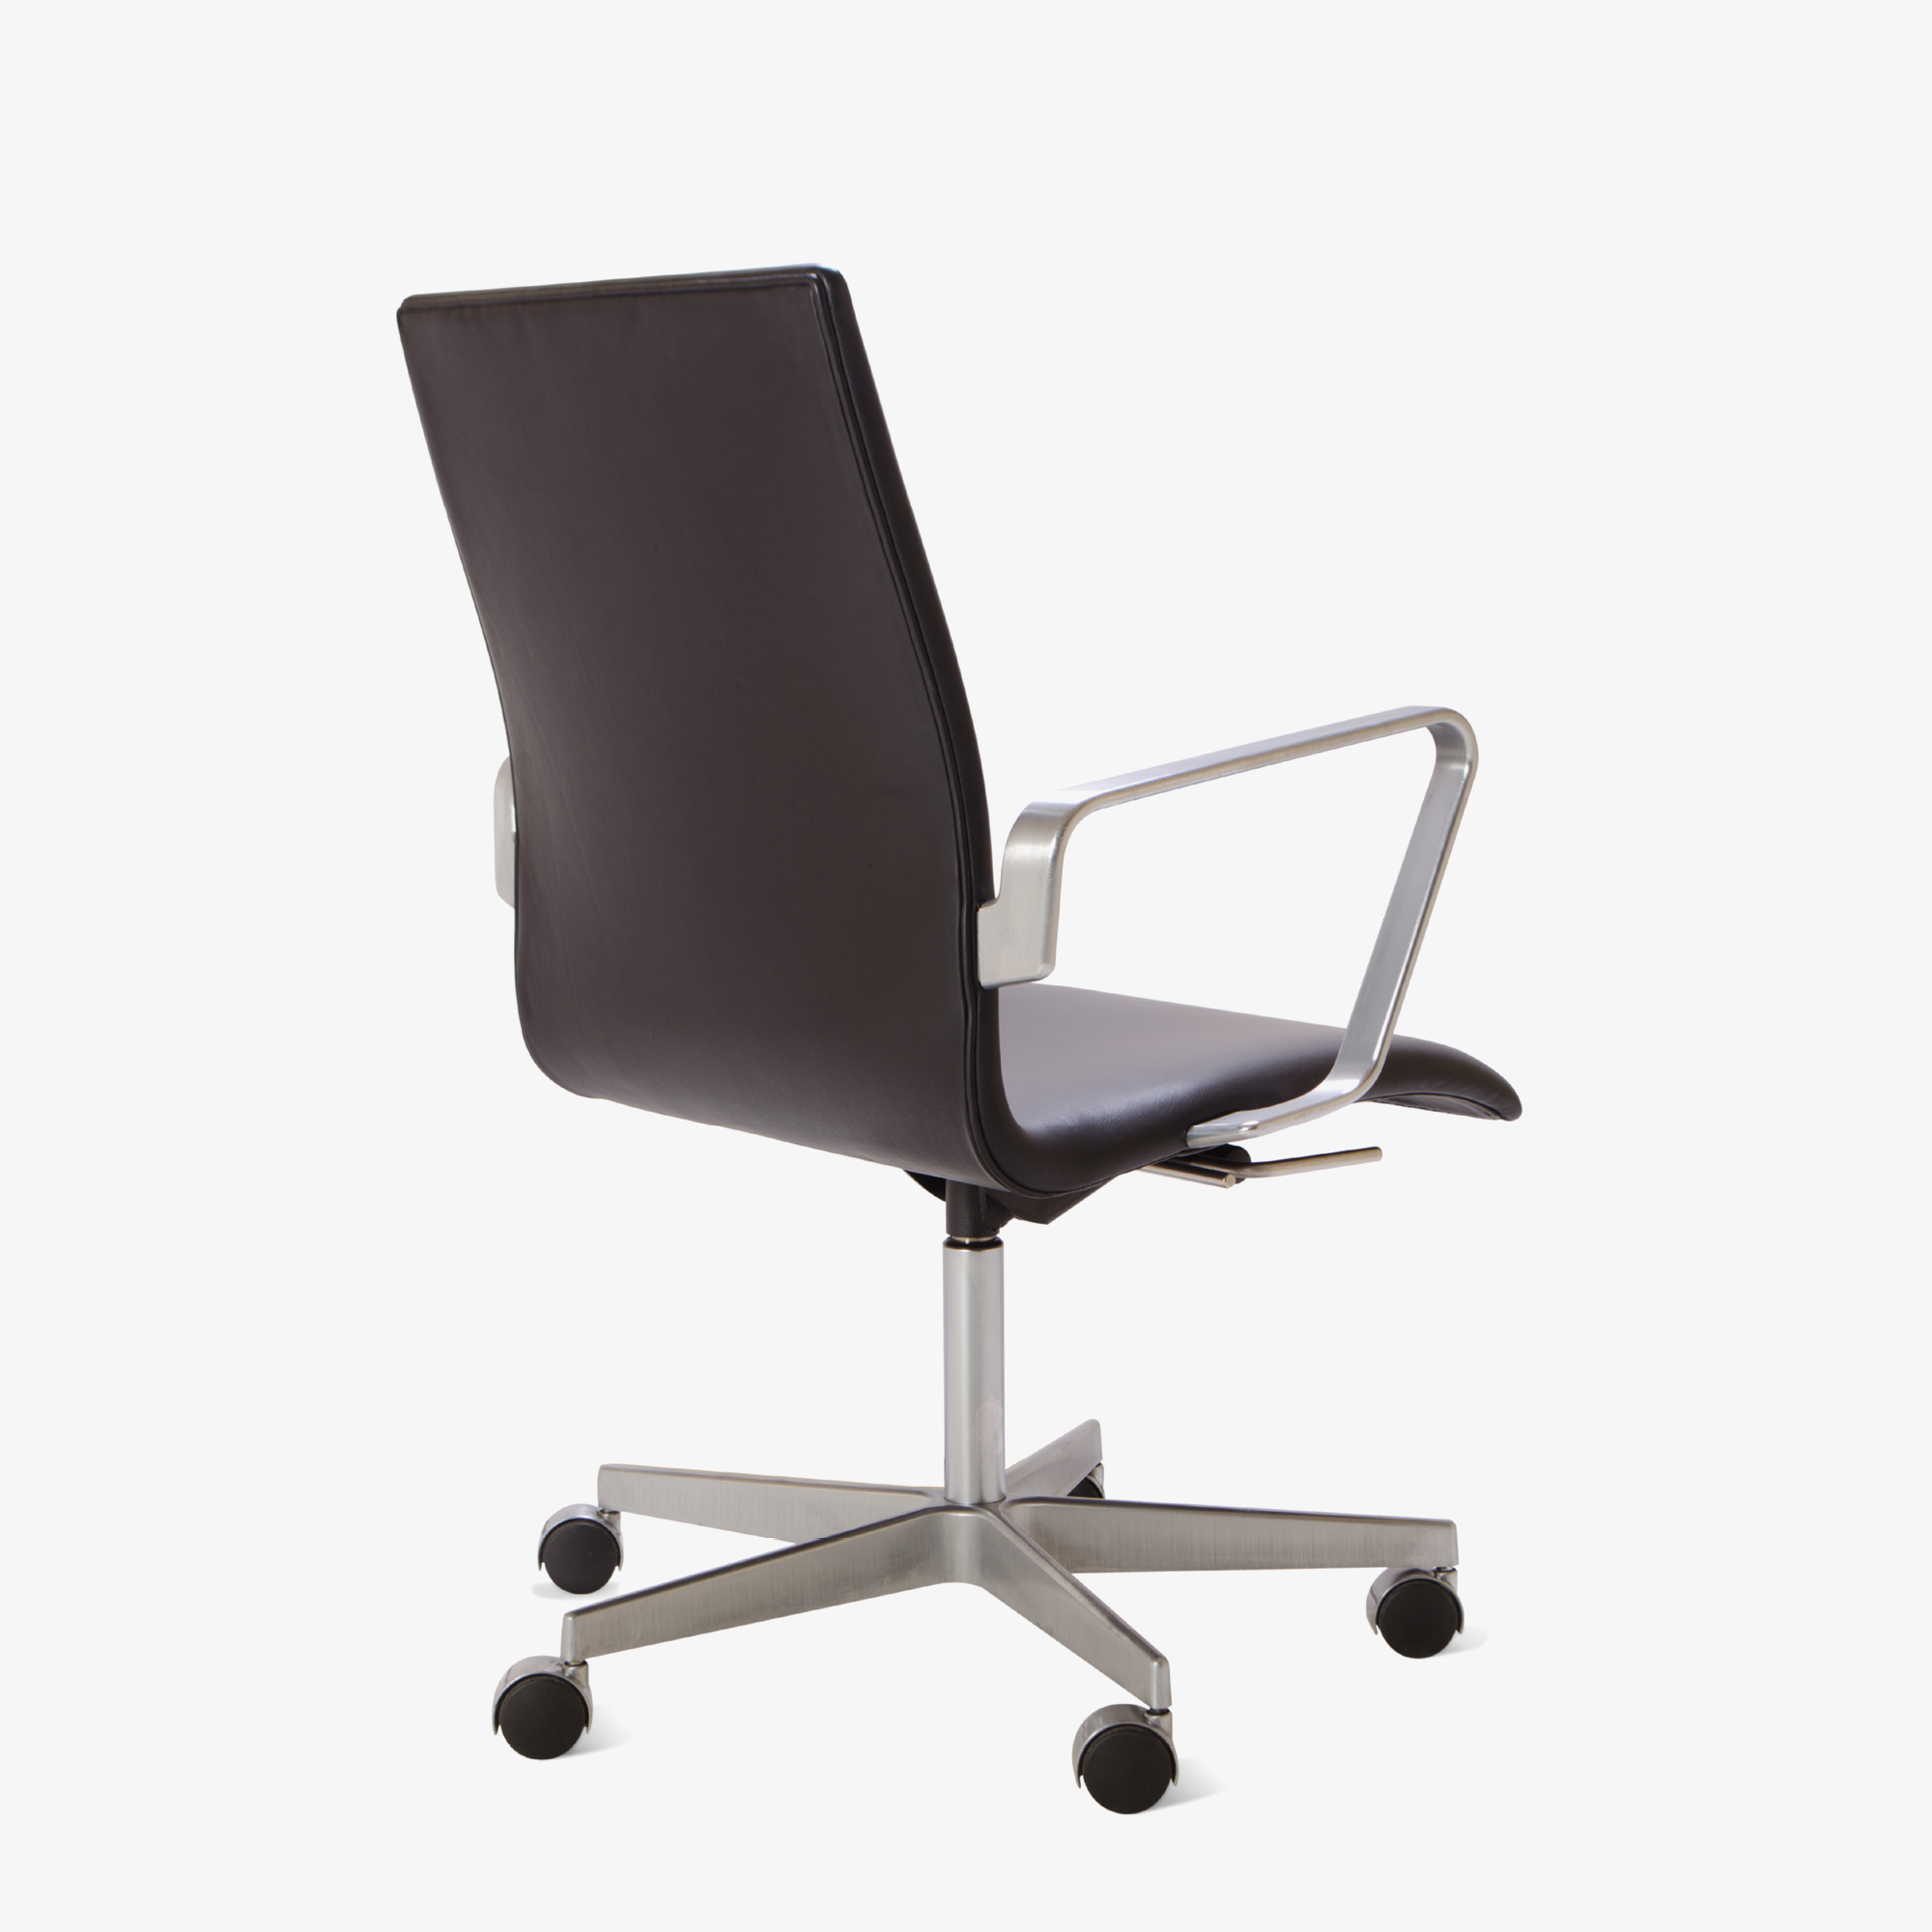 Oxford Chair by Arne Jacobsen for Fritz Hansen5.png